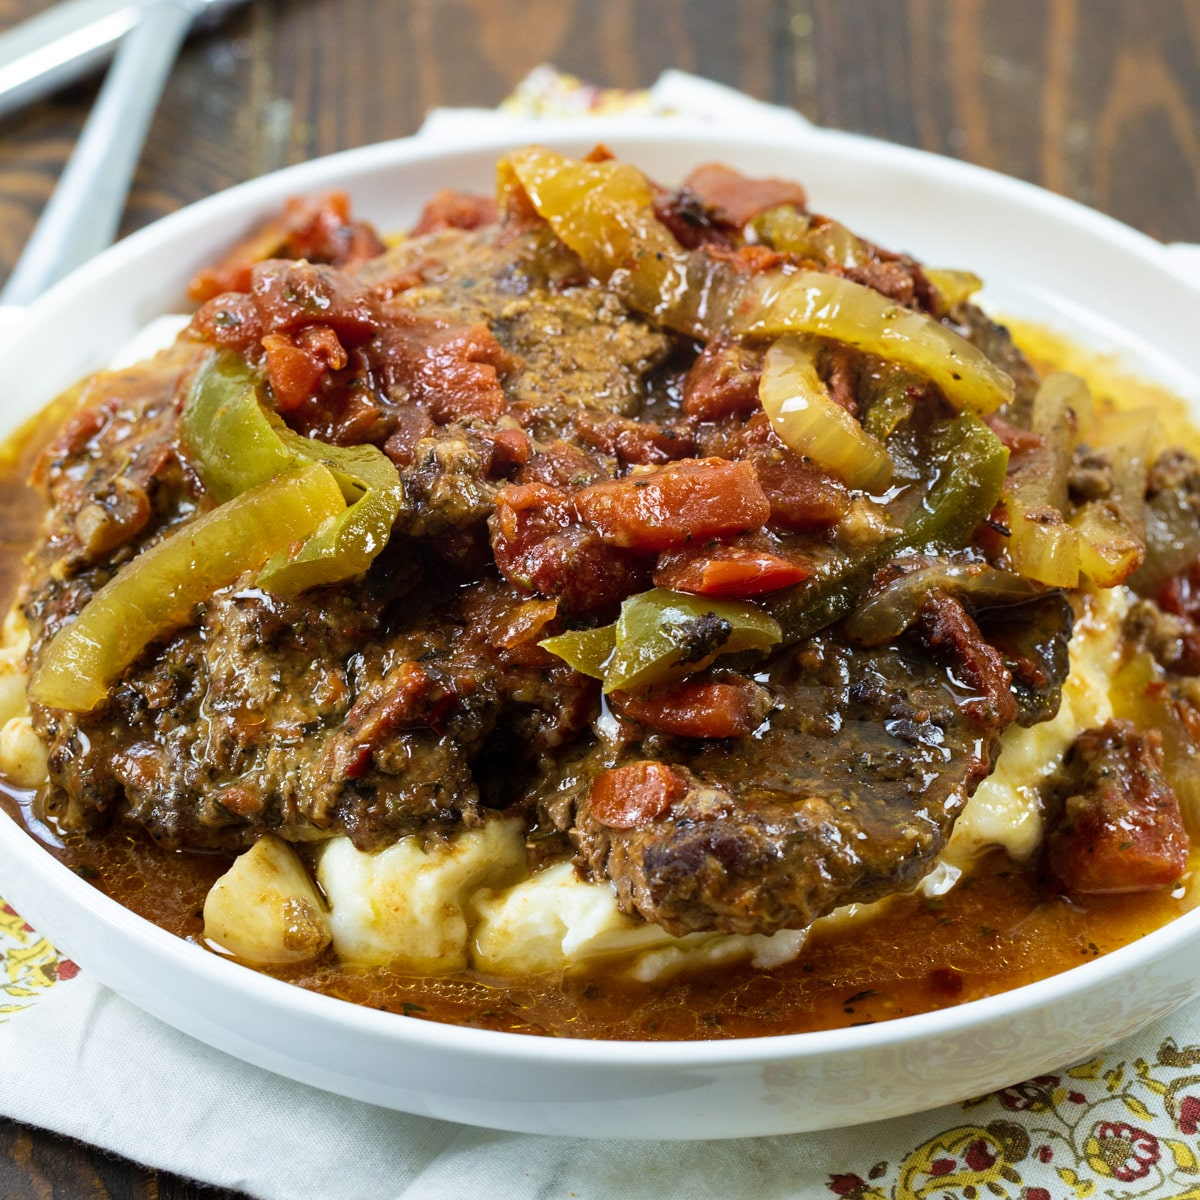 Slow Cooker Swiss Steak over mashed potatoes on a plate.